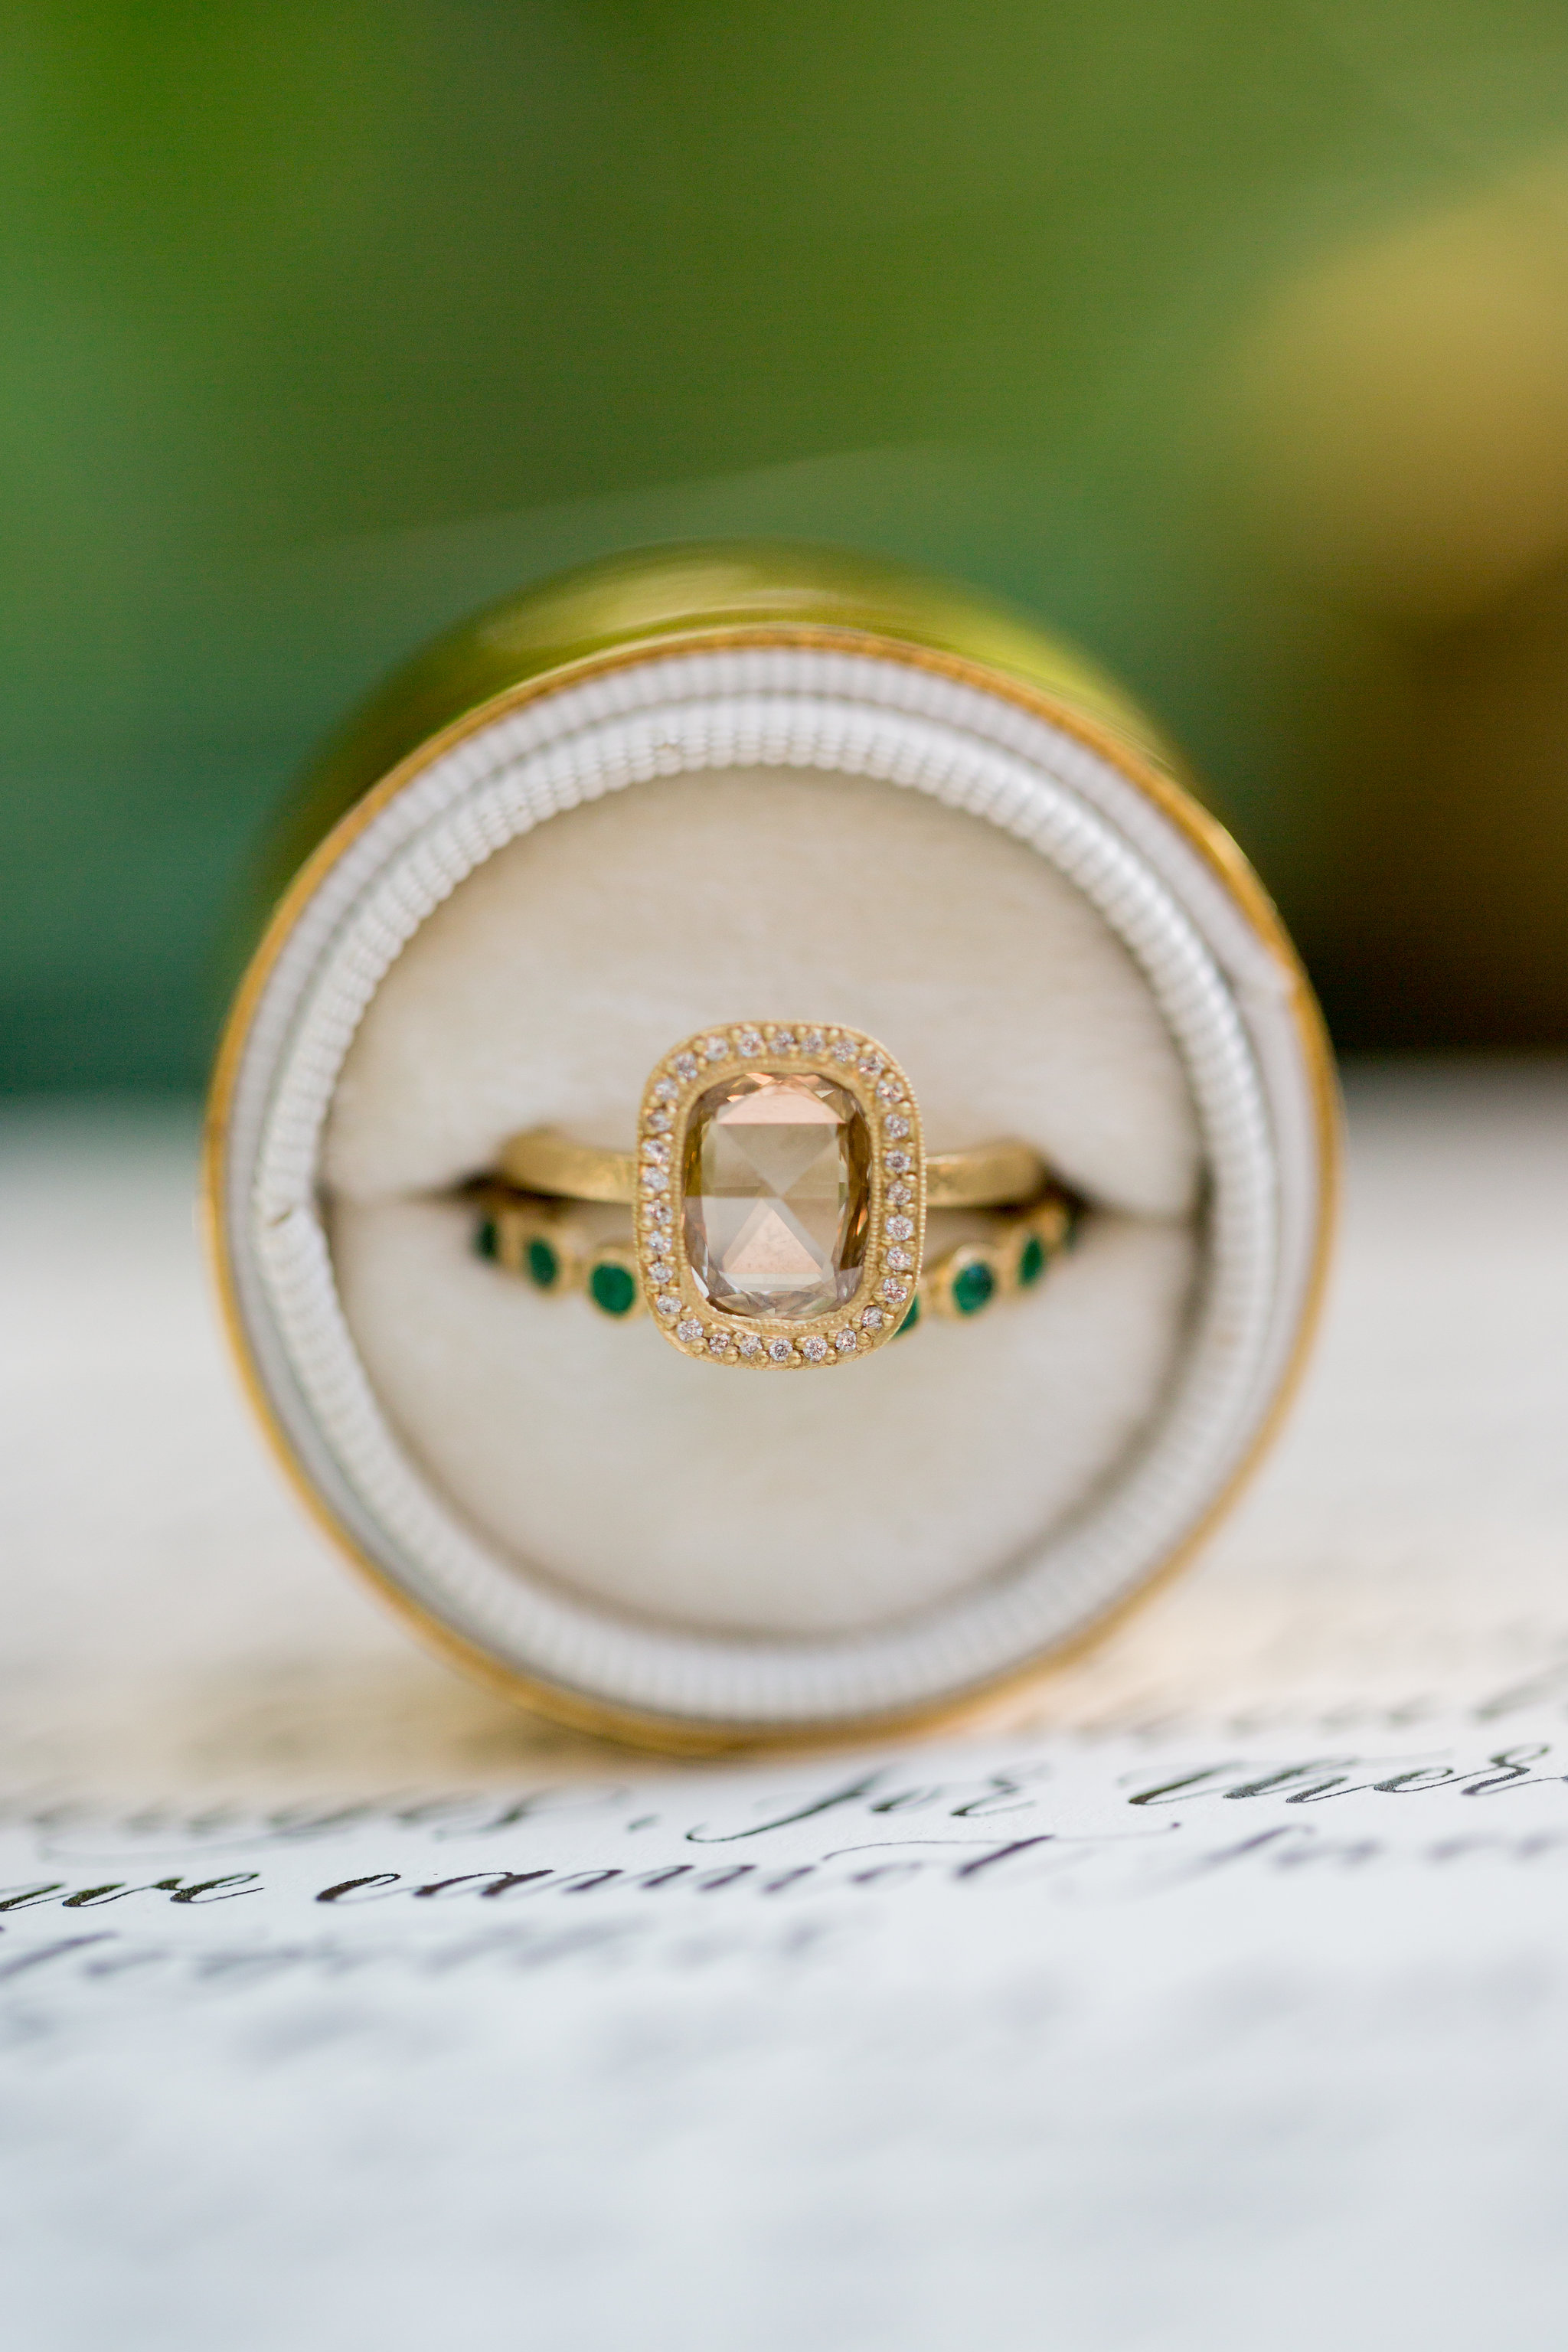 Elopement Announcement Esmerald and Gold Inspired by Paperloveme Calligraphy145.jpg